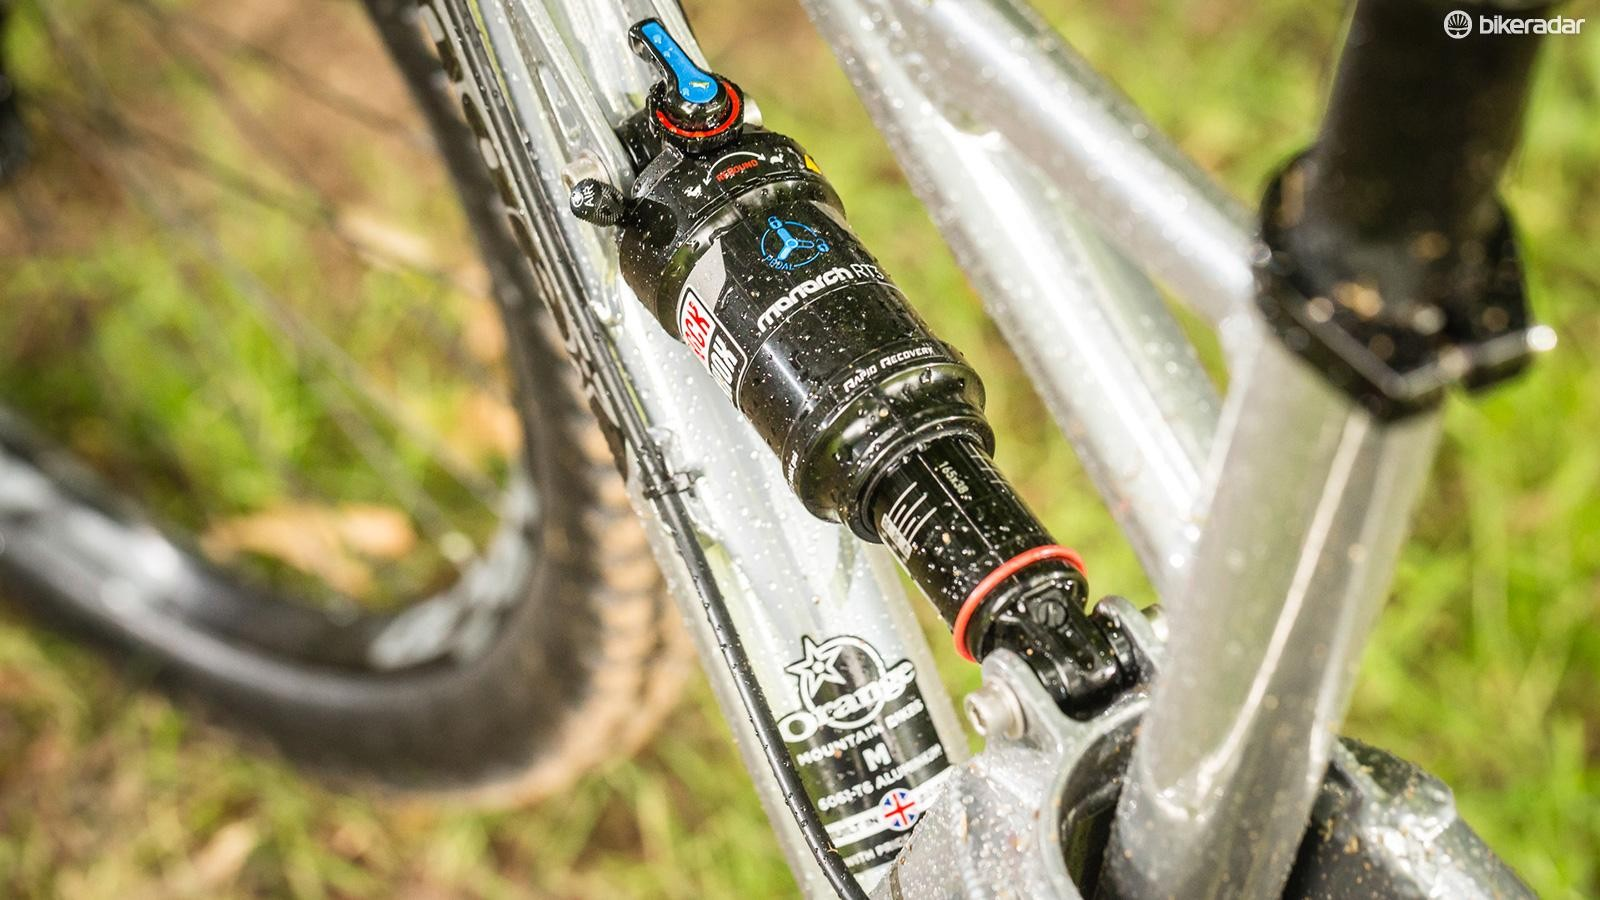 The RockShox Monarch RT3 shock has a short stroke but keeps the 110mm of travel under control